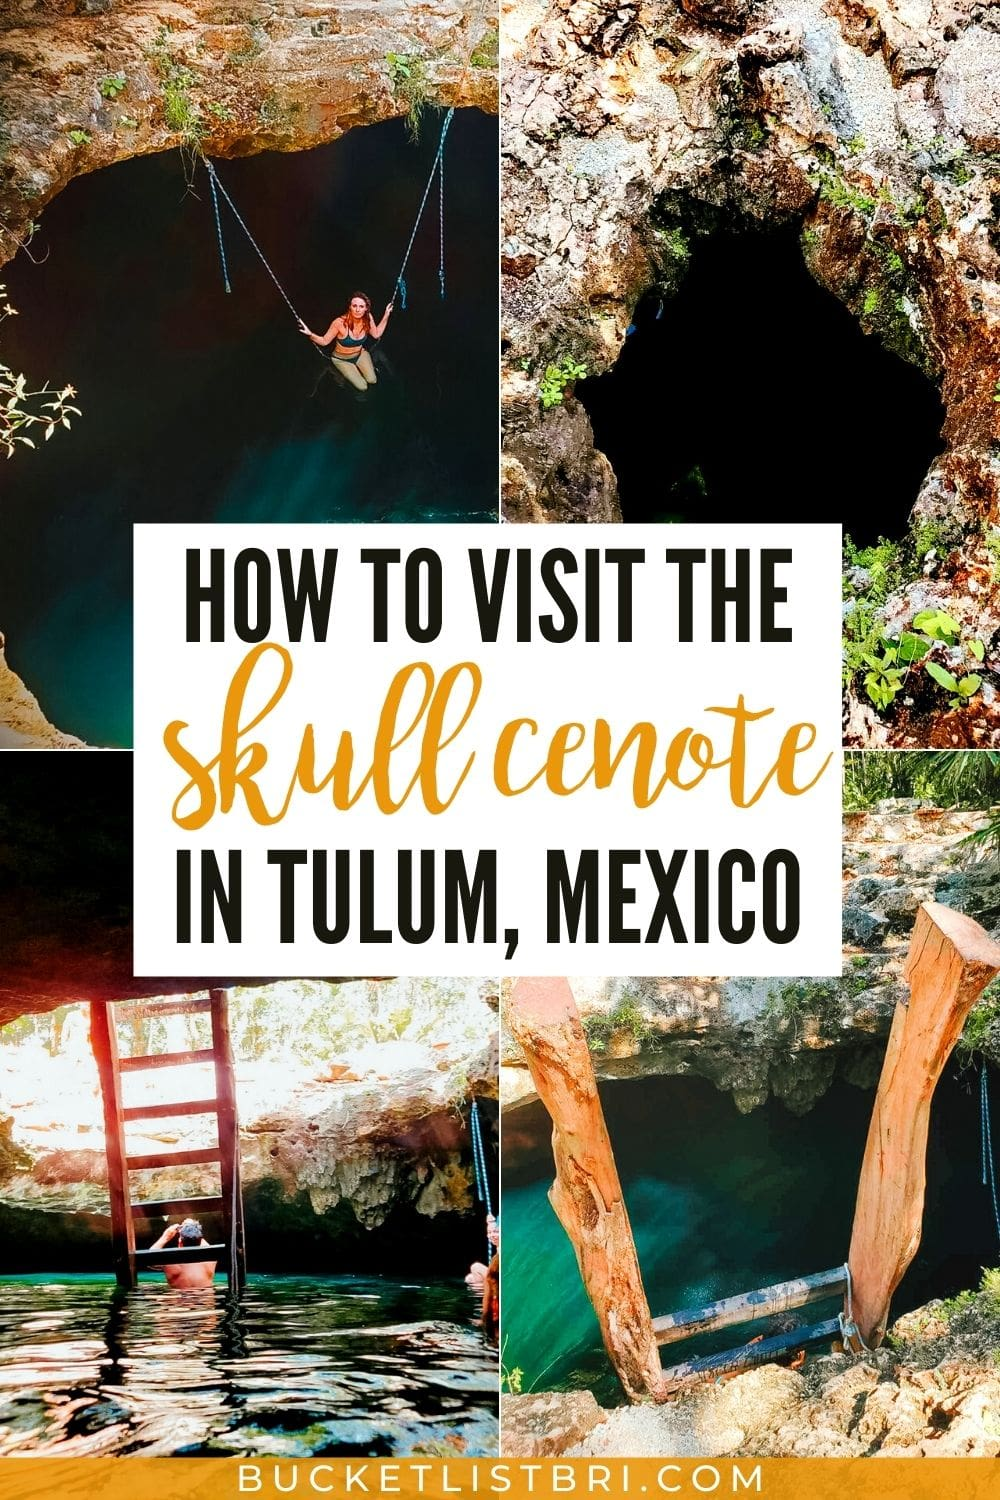 grid images of cenote calavera with text overly how to visit the skull cenote in tulum mexico